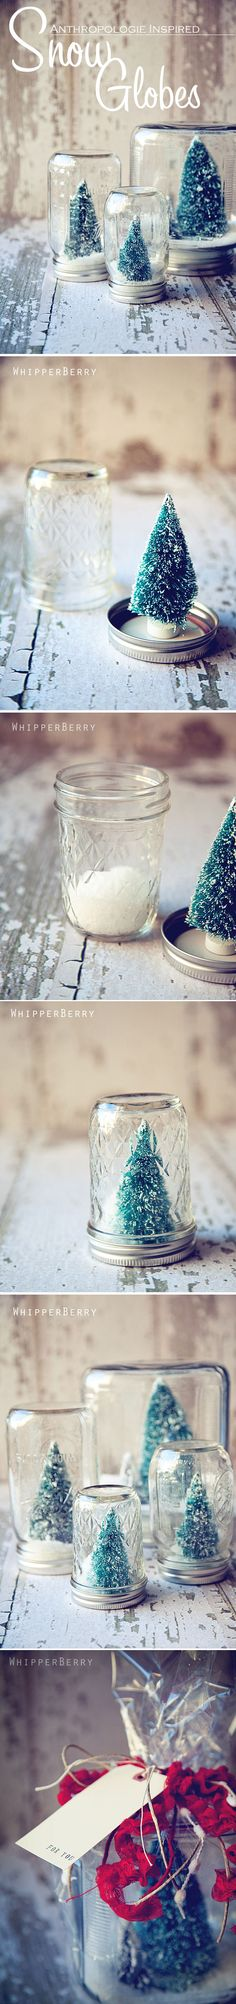 I love this idea -- snowglobes made out of mason or ball jars! #reuse #recycle